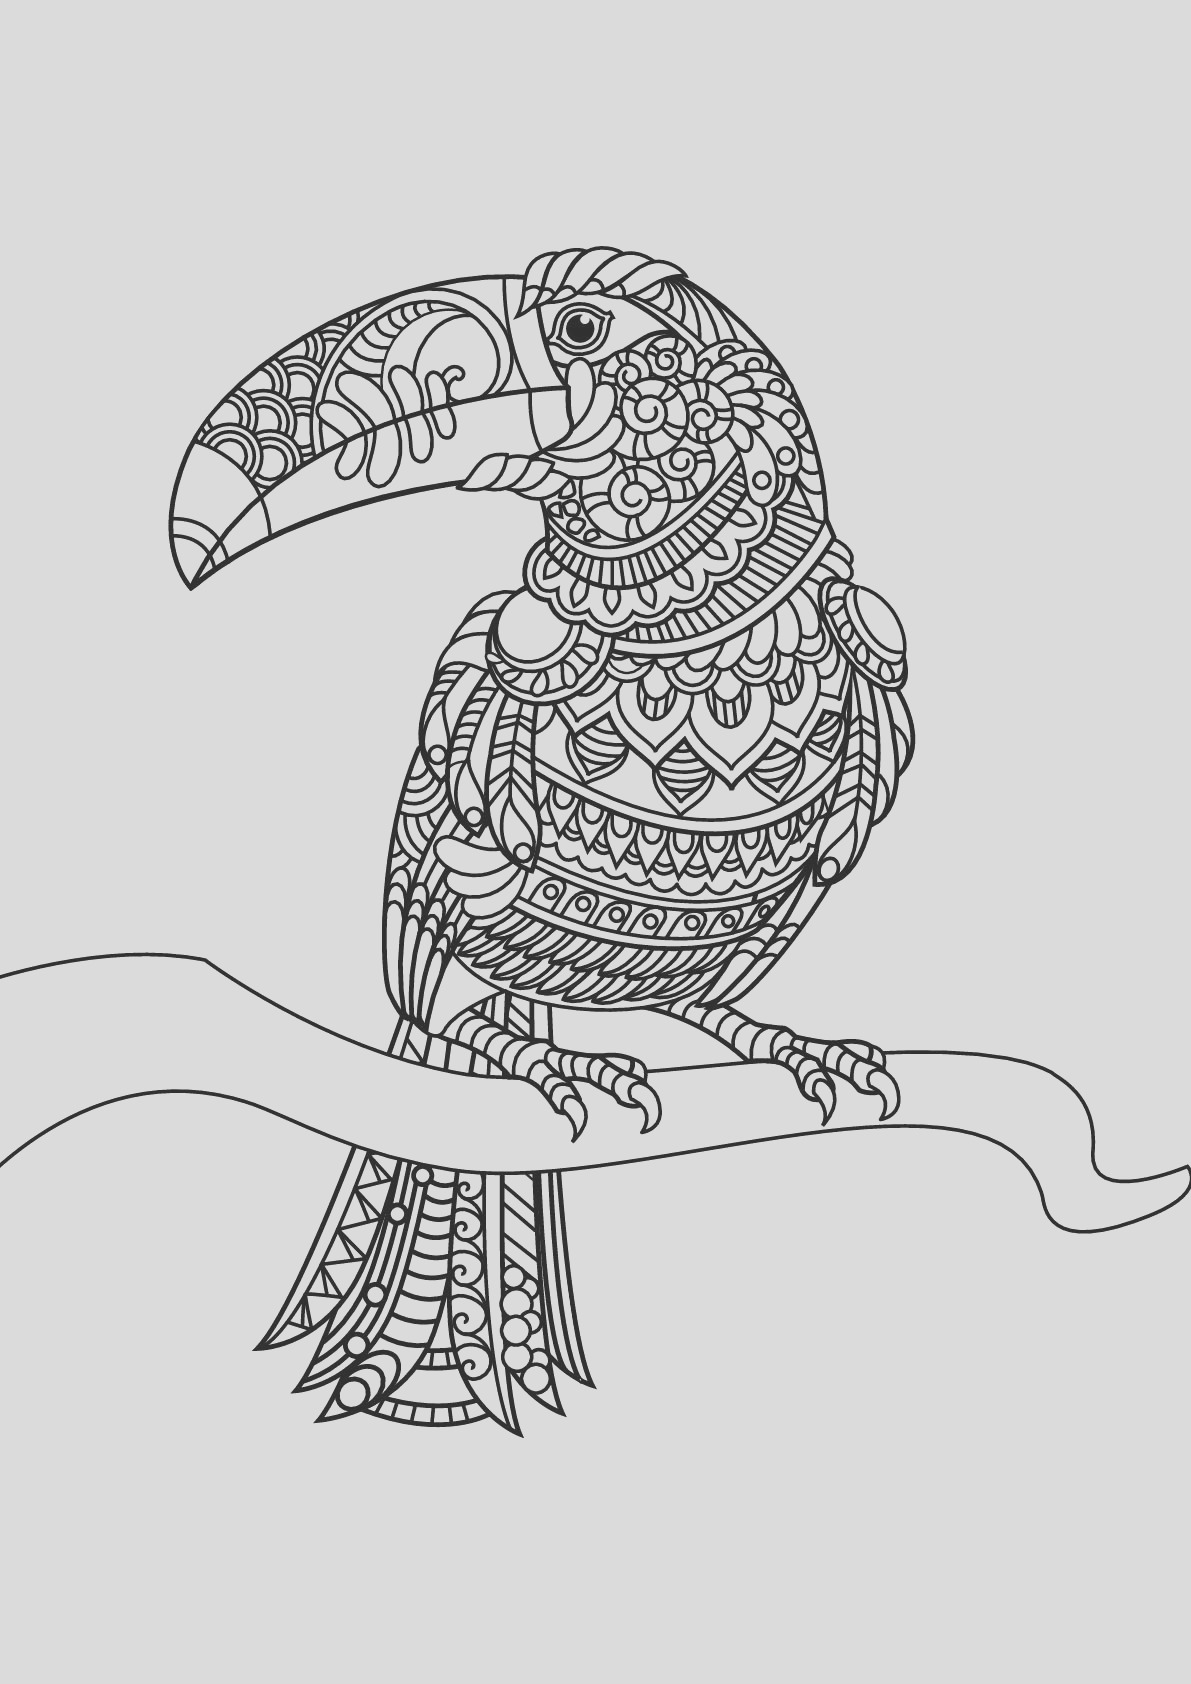 image=birds Coloring for kids birds 842 1